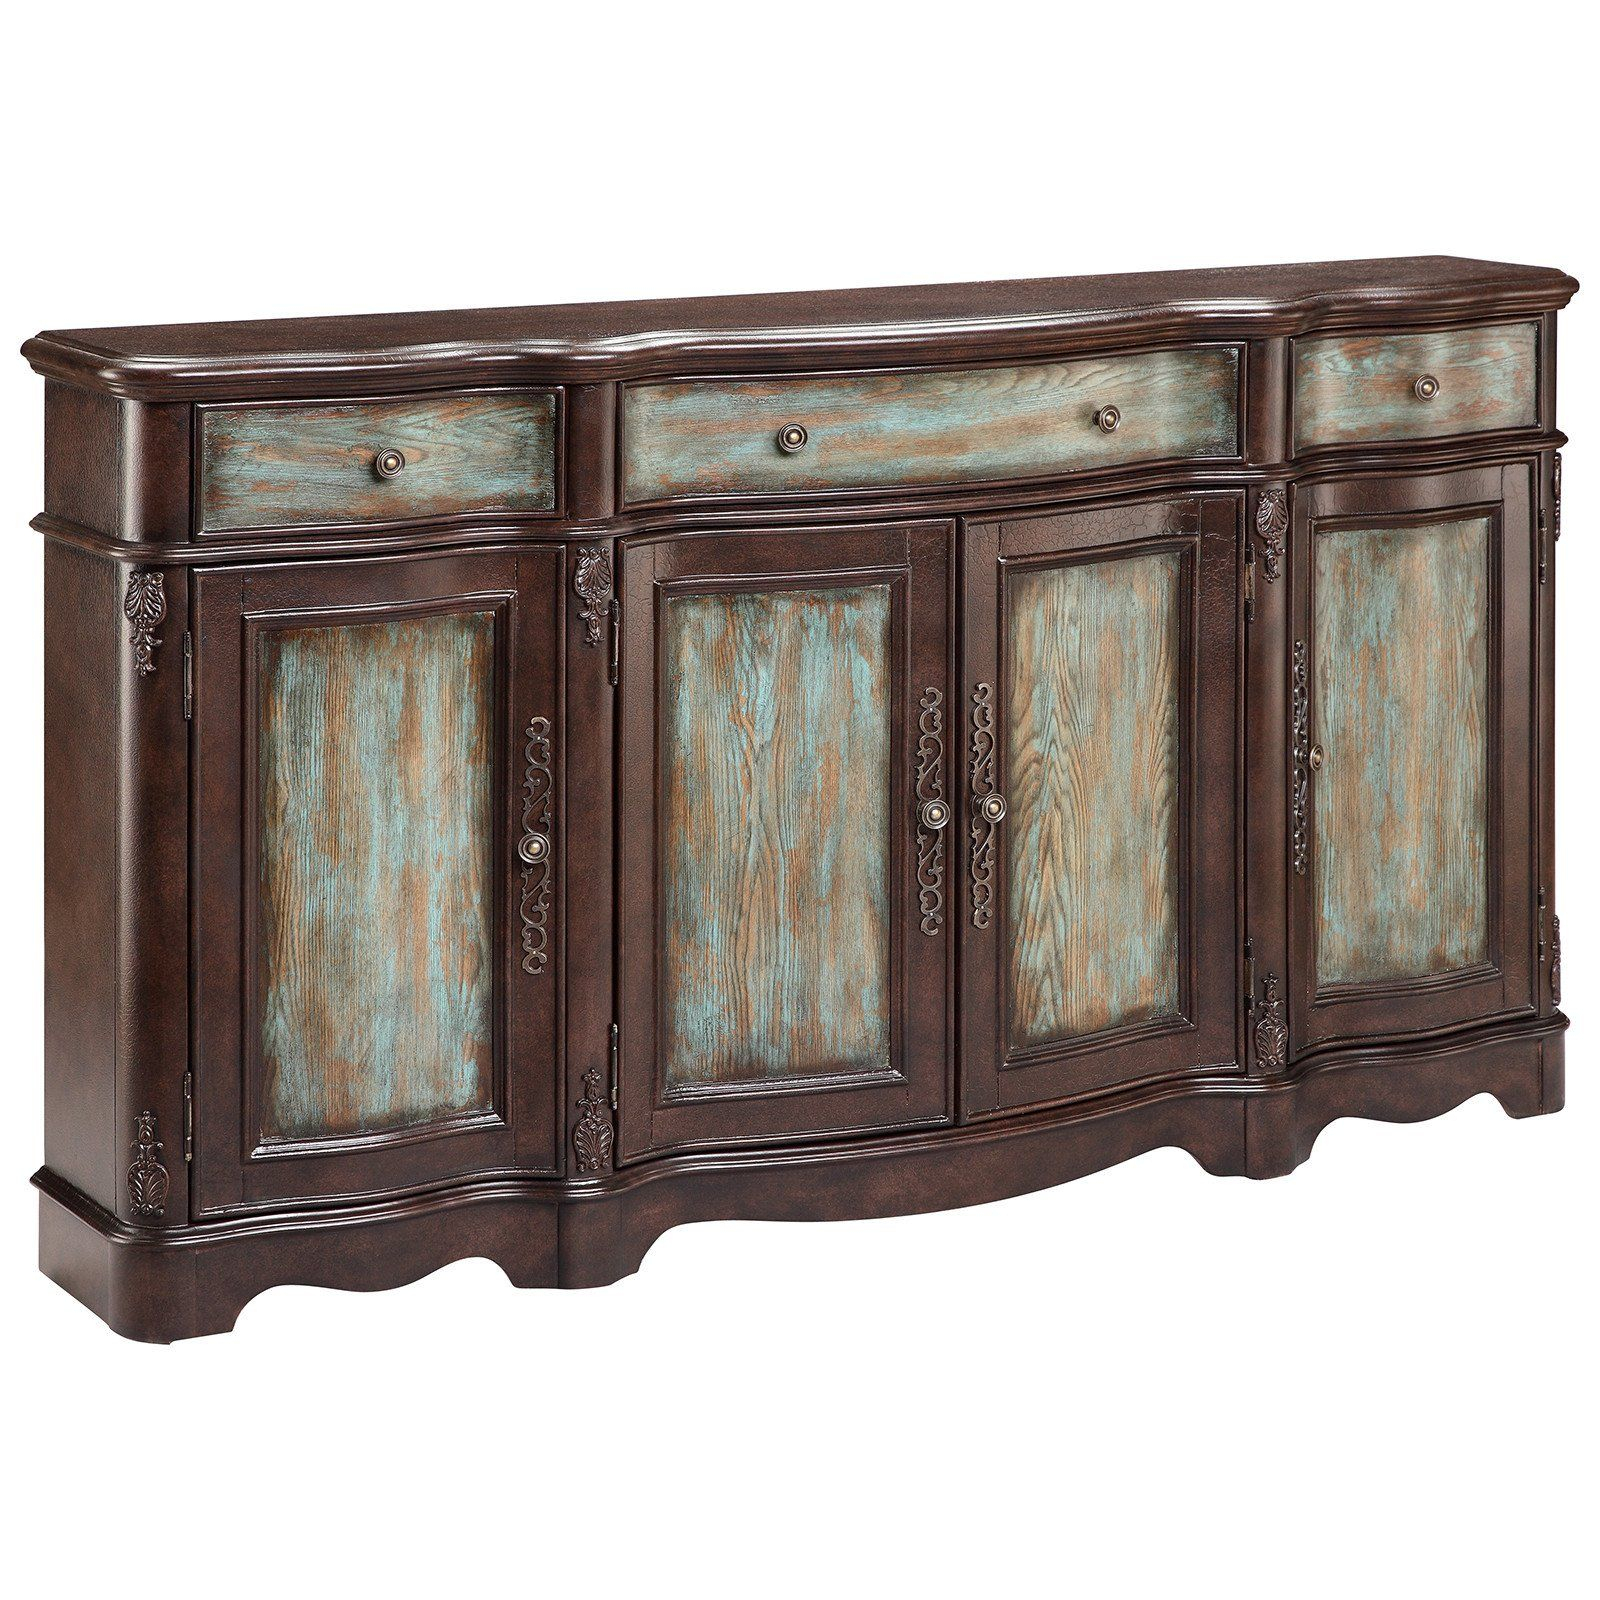 Lyle 4 Door Sideboard In Brown And Blue | Credenzas, Chests Intended For Most Recently Released Hewlett Sideboards (View 15 of 20)